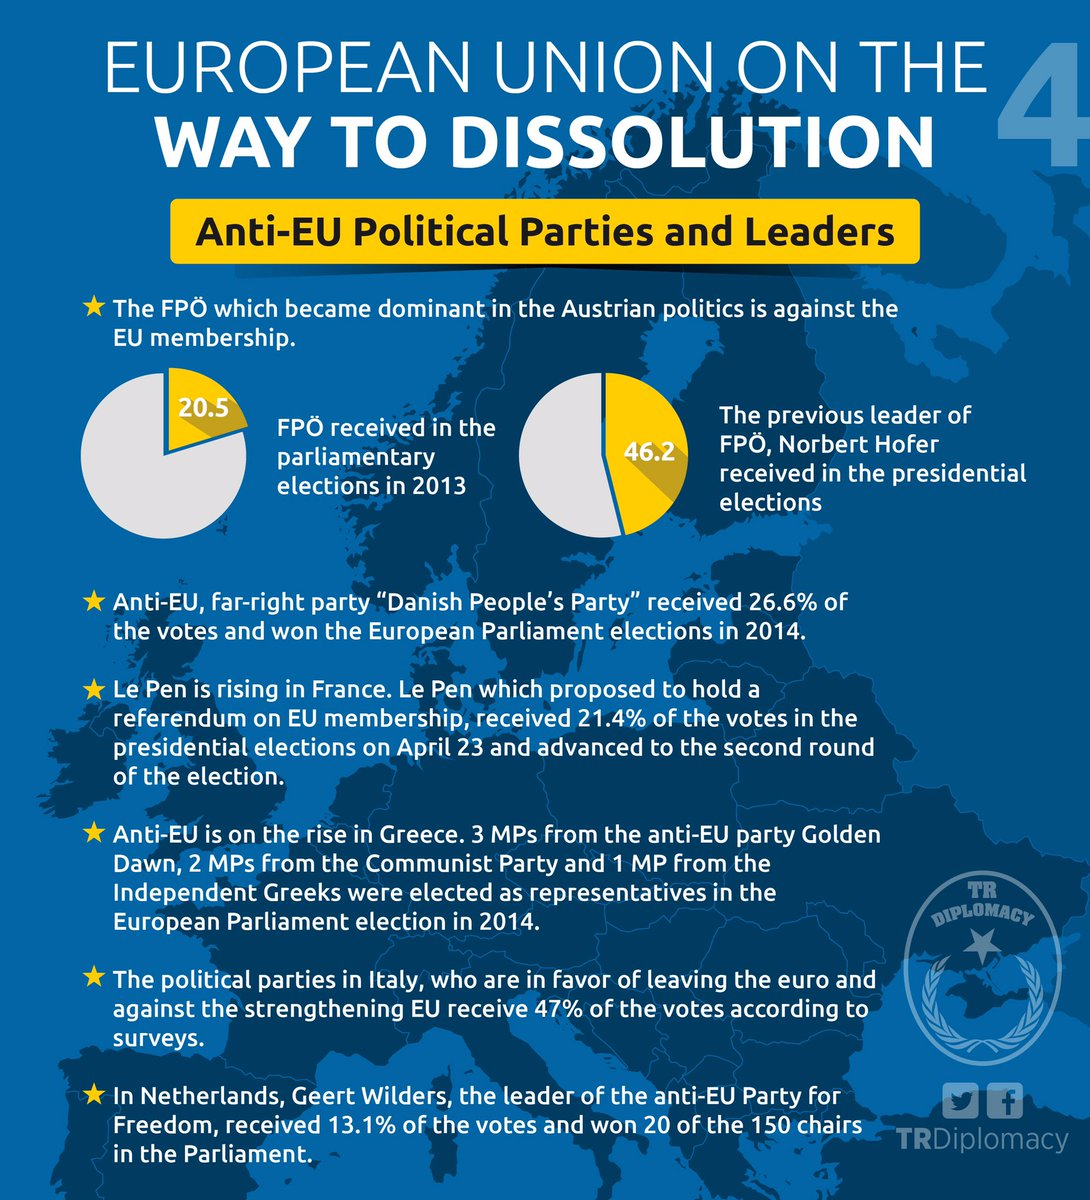 EU is on the way to dissolution